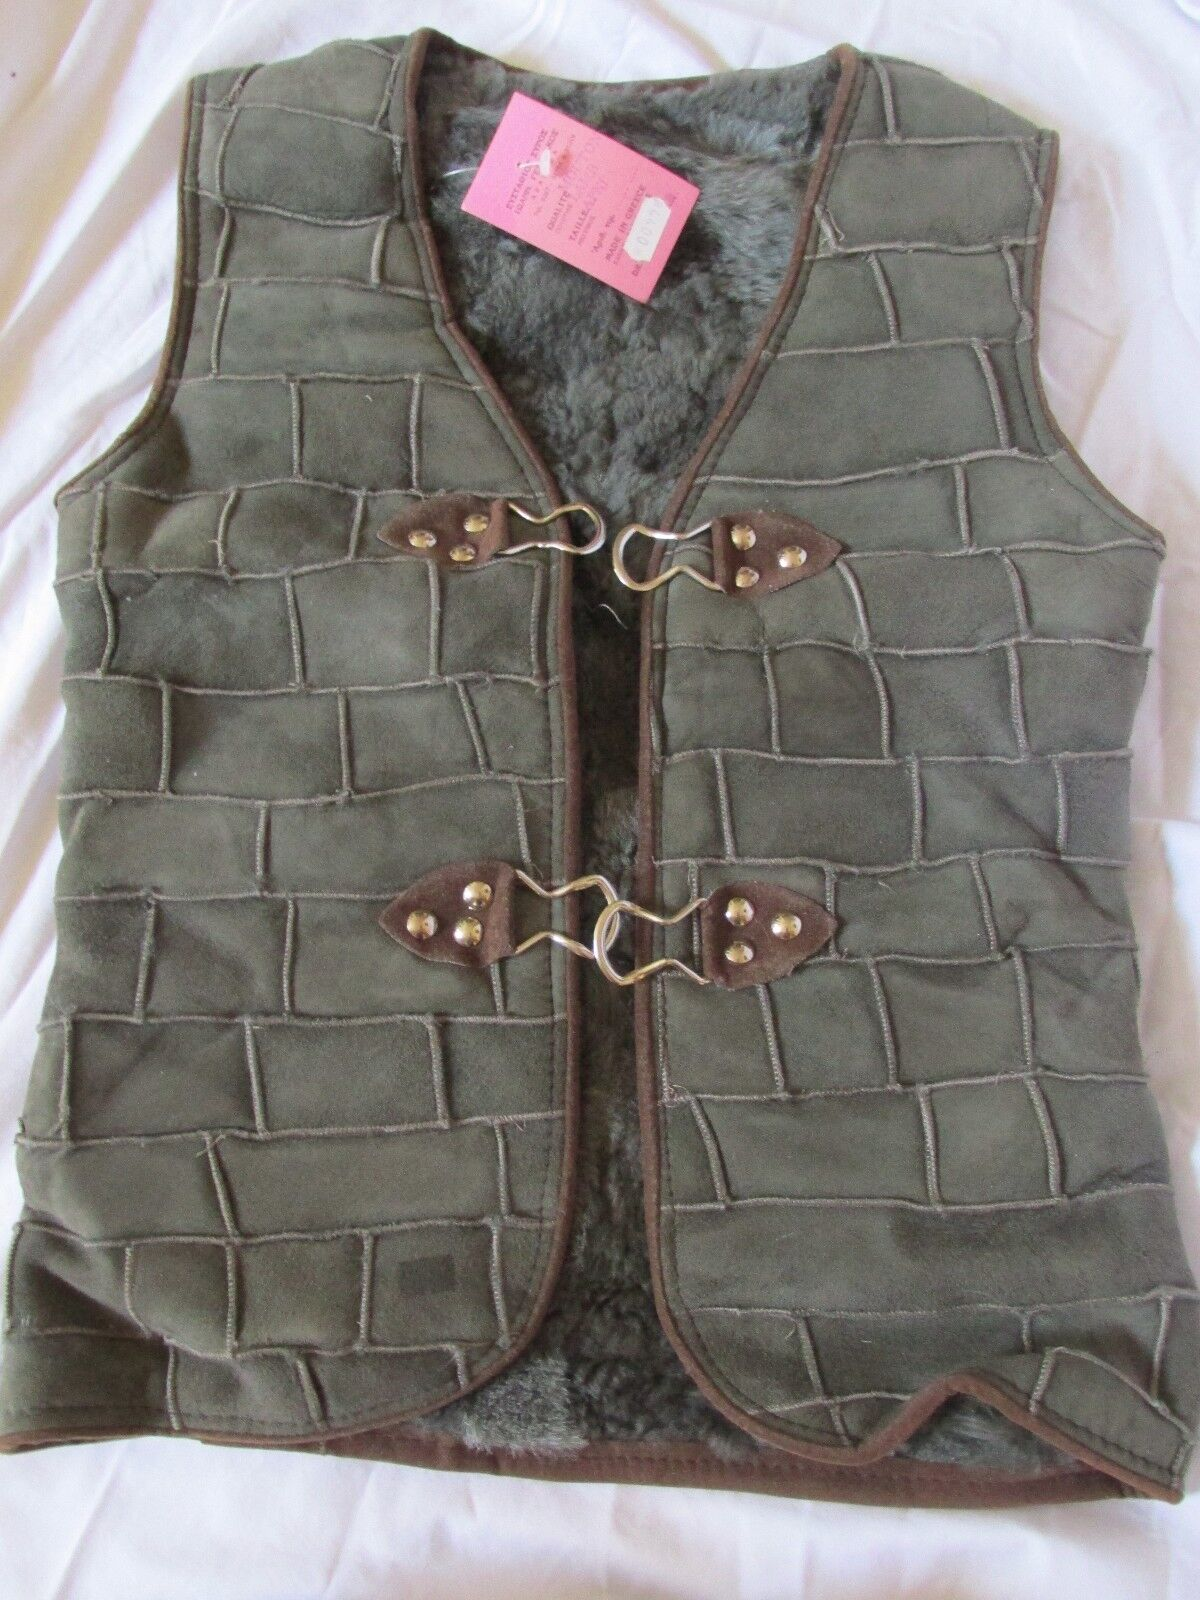 New Women's Mouton Lamb Apni Fur Vest Suede Suede Suede Leather Olive Green Greece Small 1a97d8